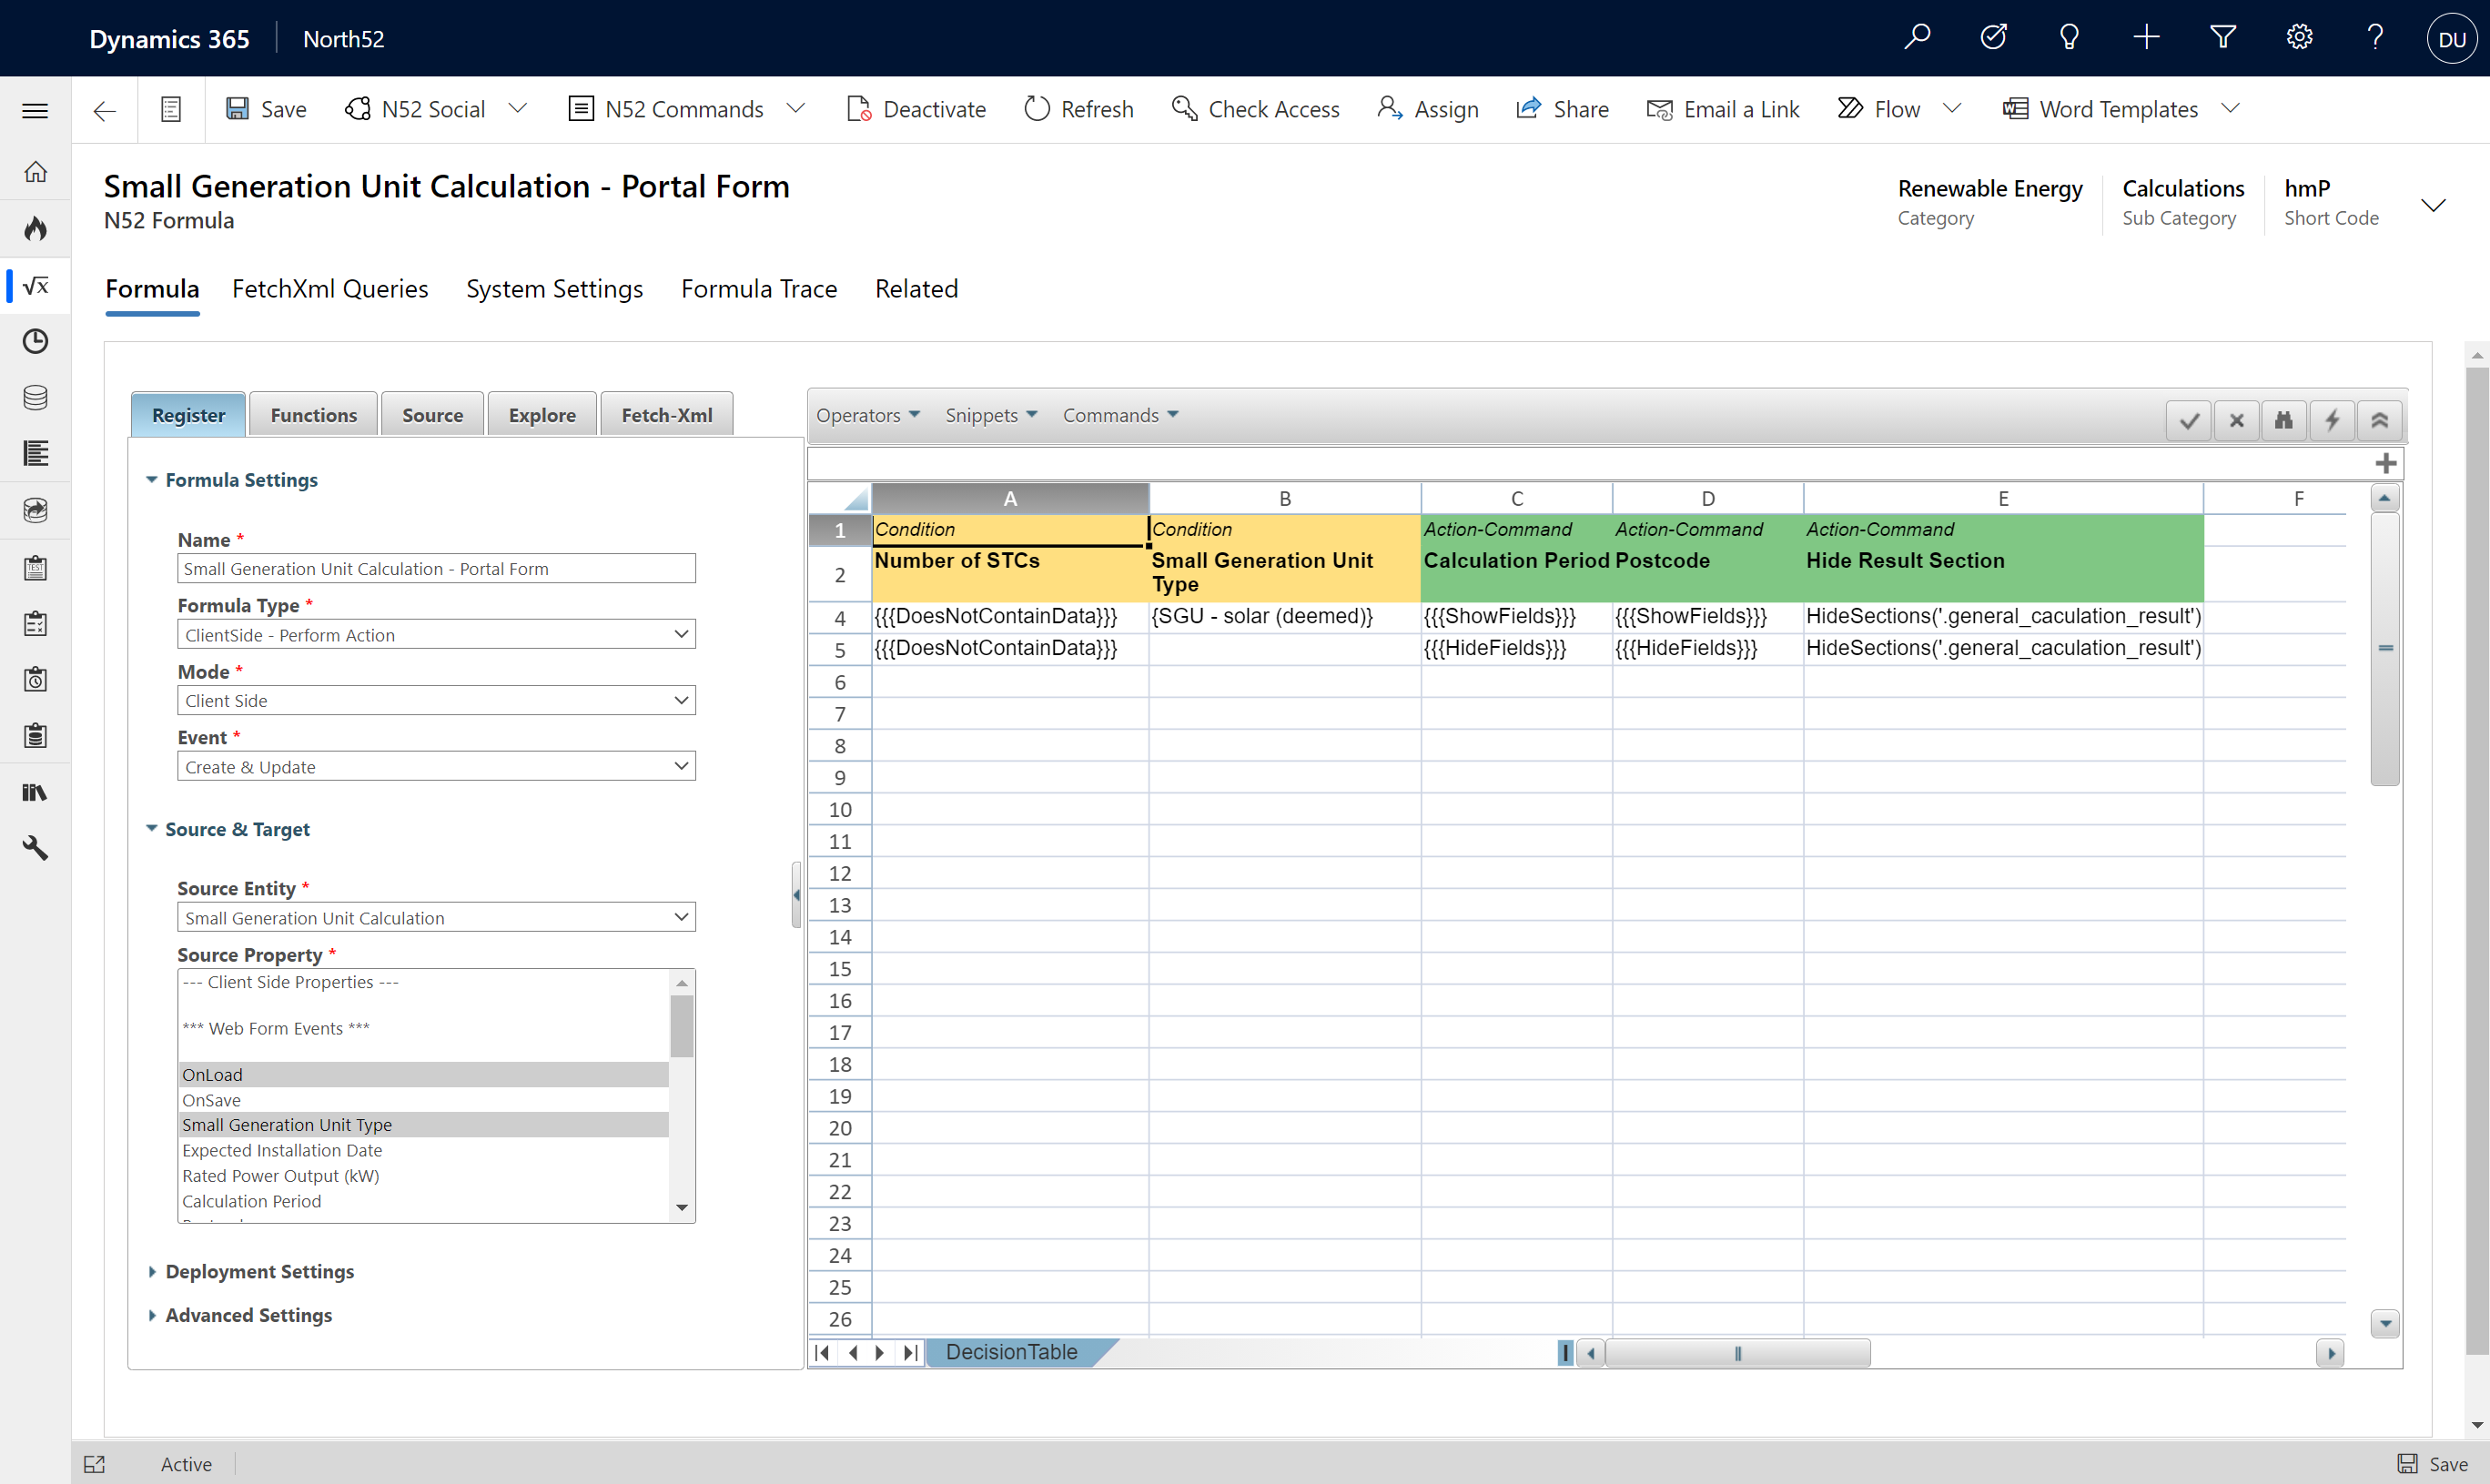 North52 Business Rules Engine, Decision Table for Dynamics 365 Portal Form